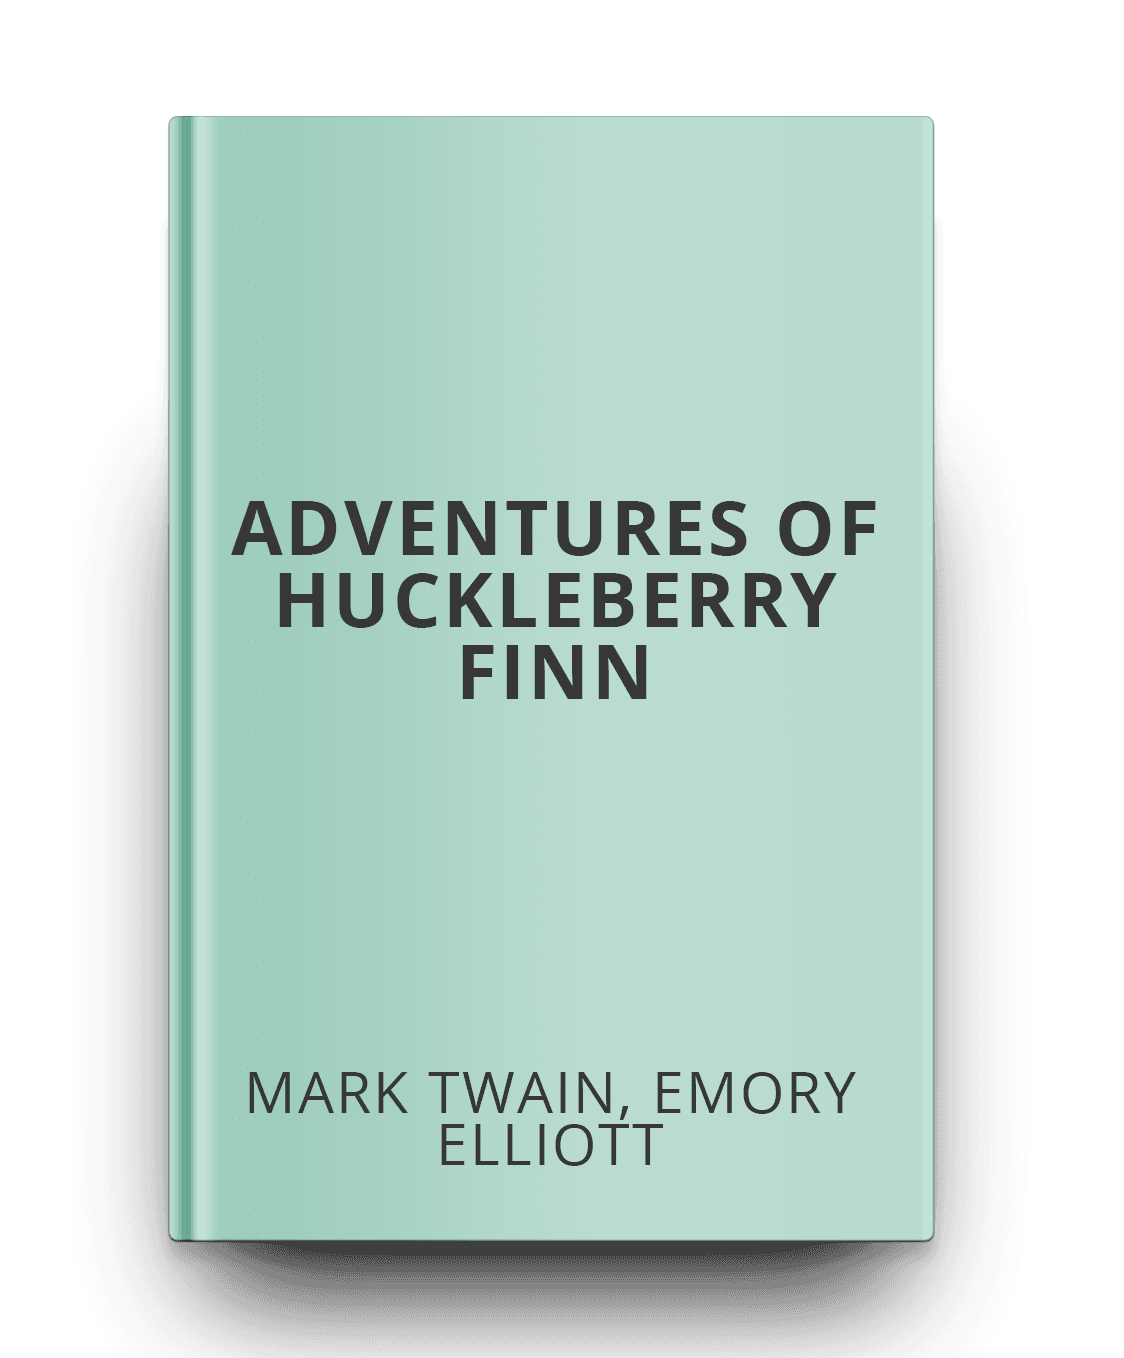 moral development and dilemmas of huck in the adventures of huckleberry finn by mark twain As a novel of maturation, the adventures of huckleberry finn depicts huck's moral growth from that of a boy who is only concerned with his desires into a young man who feels a responsibility .